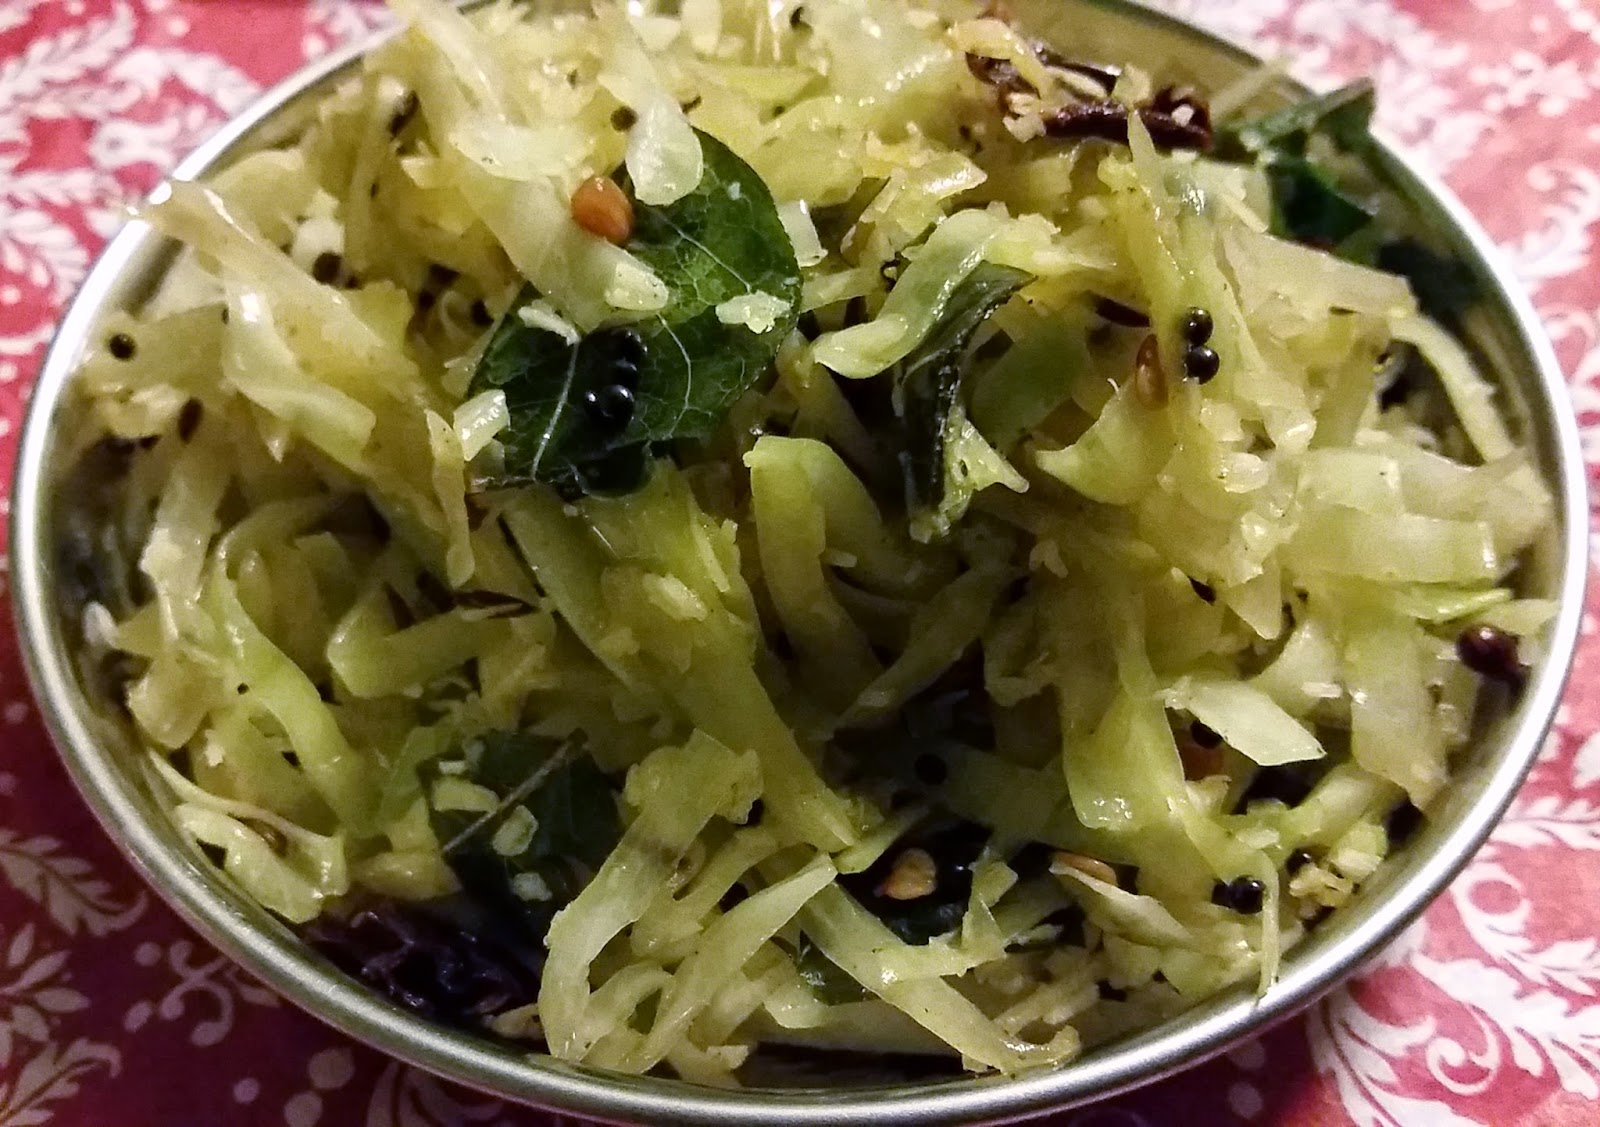 Fabulous fried cabbage recipes - fabulous fried cabbage recipe